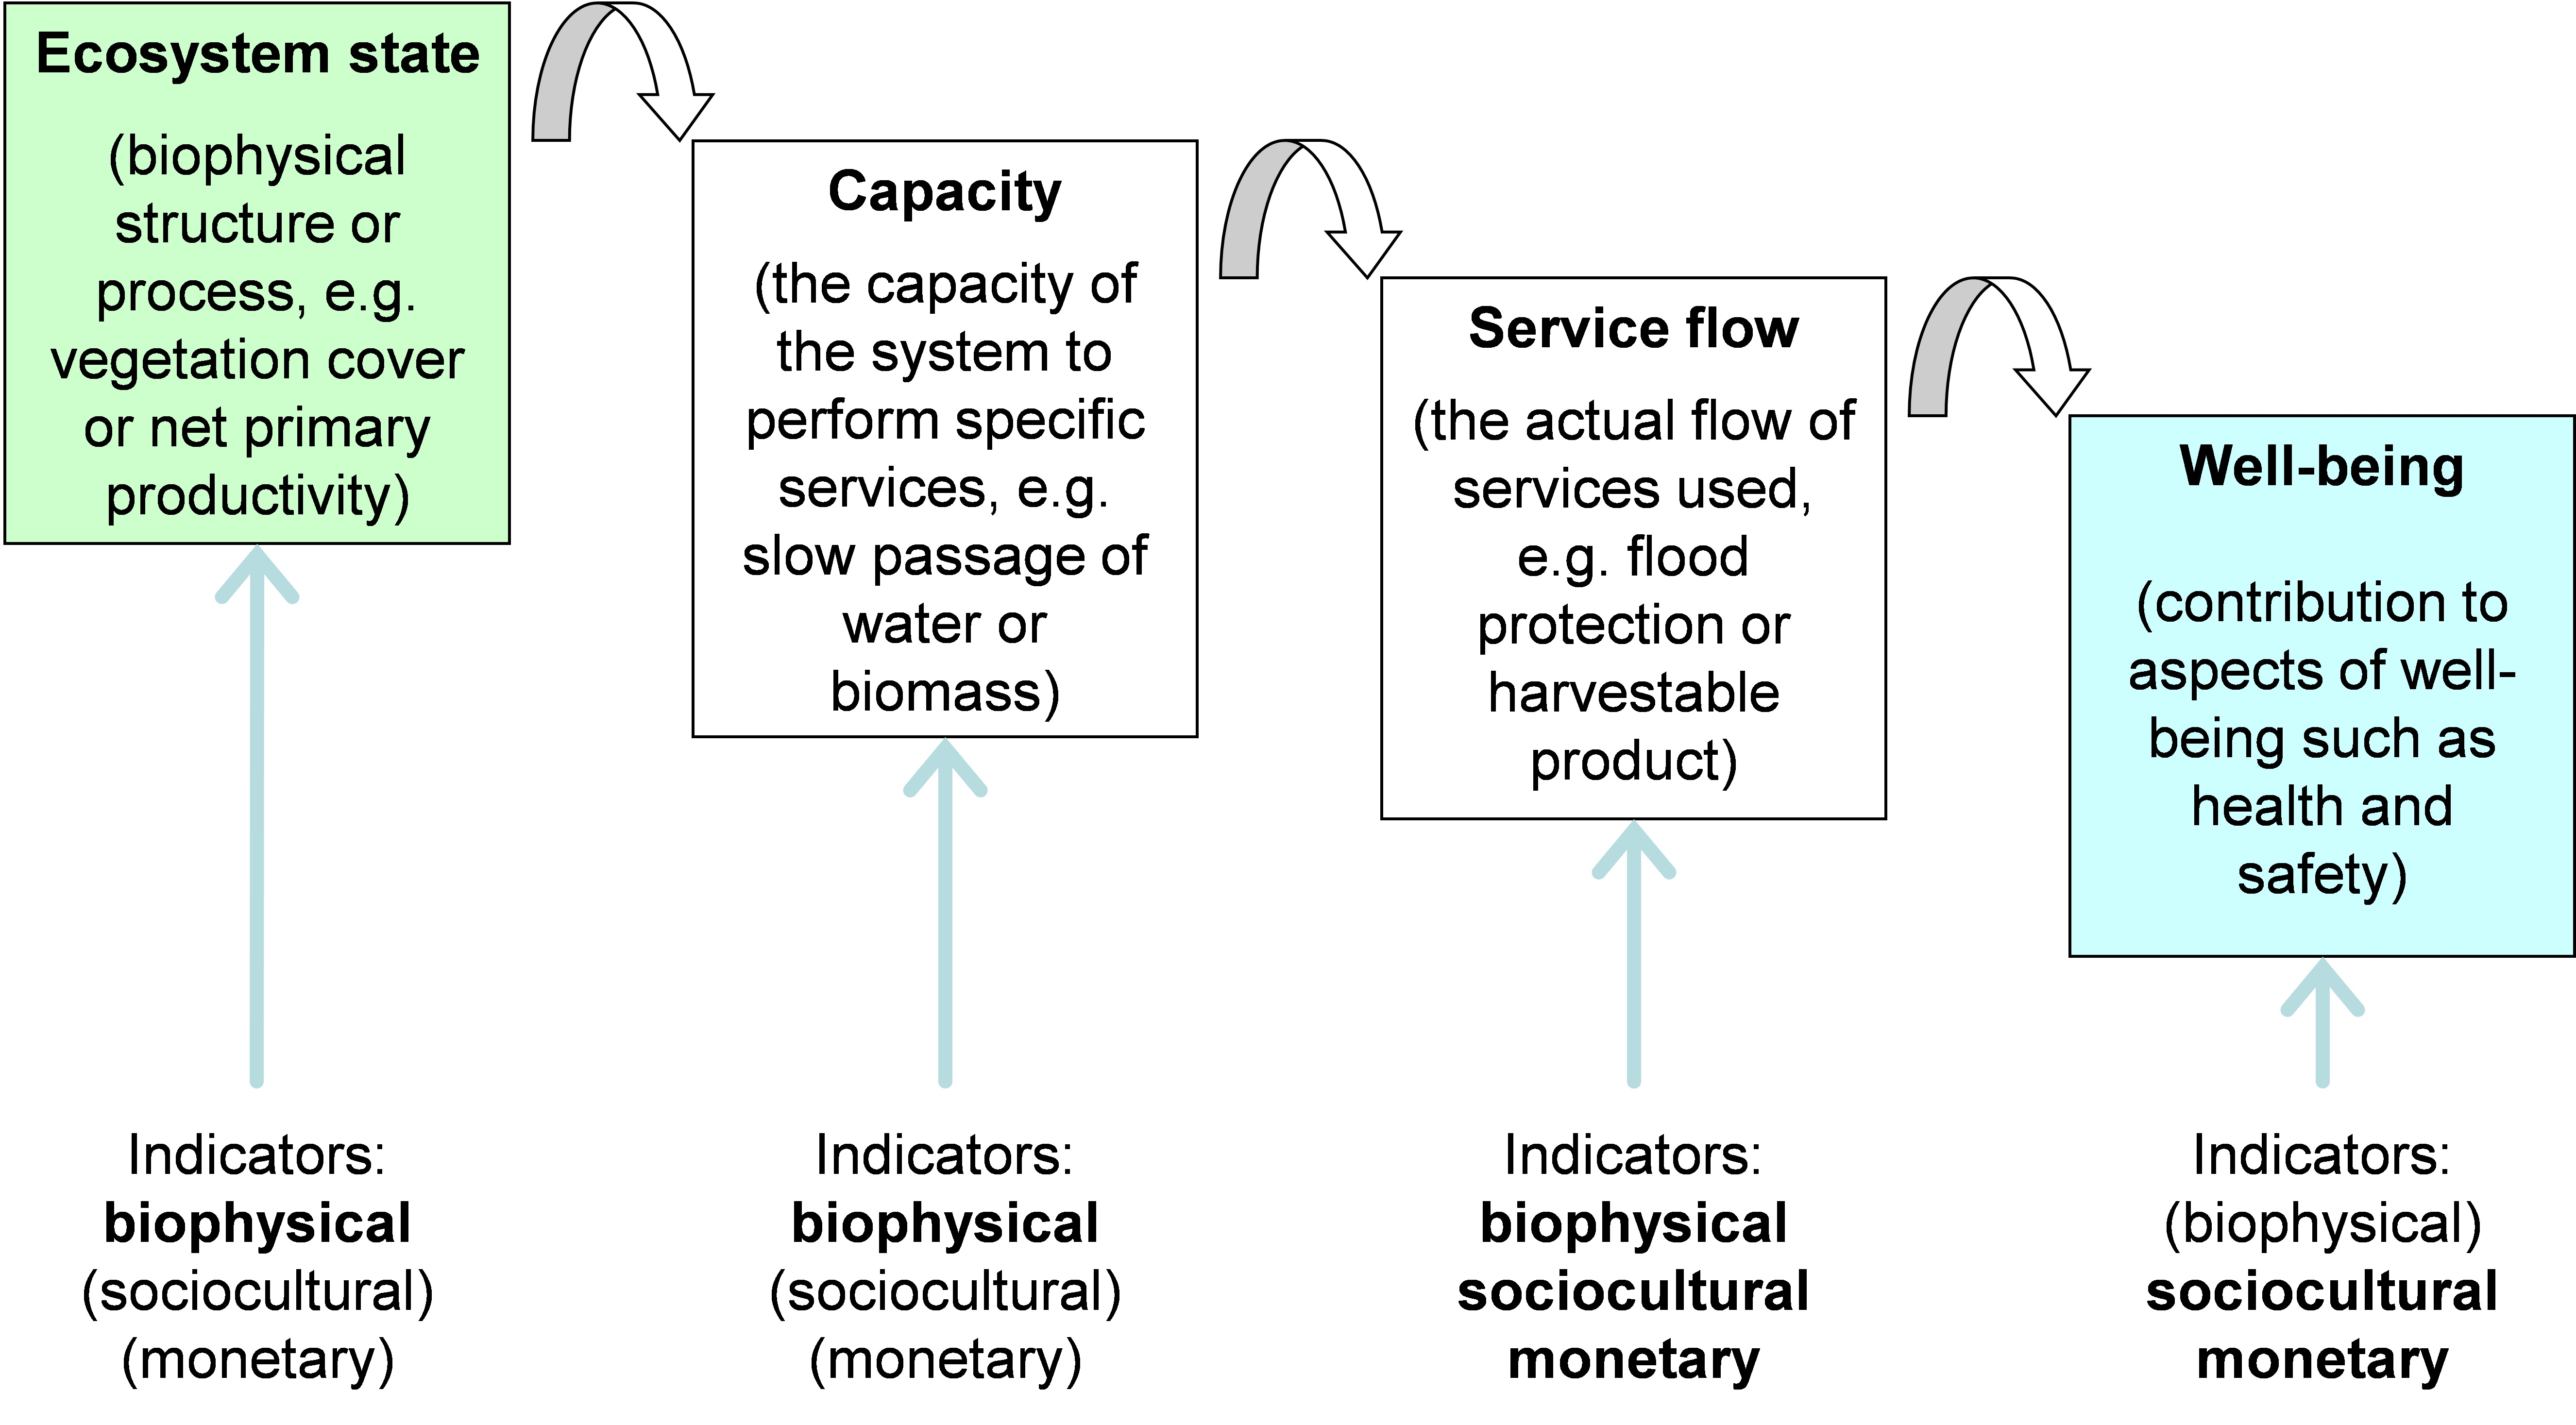 Water balance is the most important indicator of the ecosystem